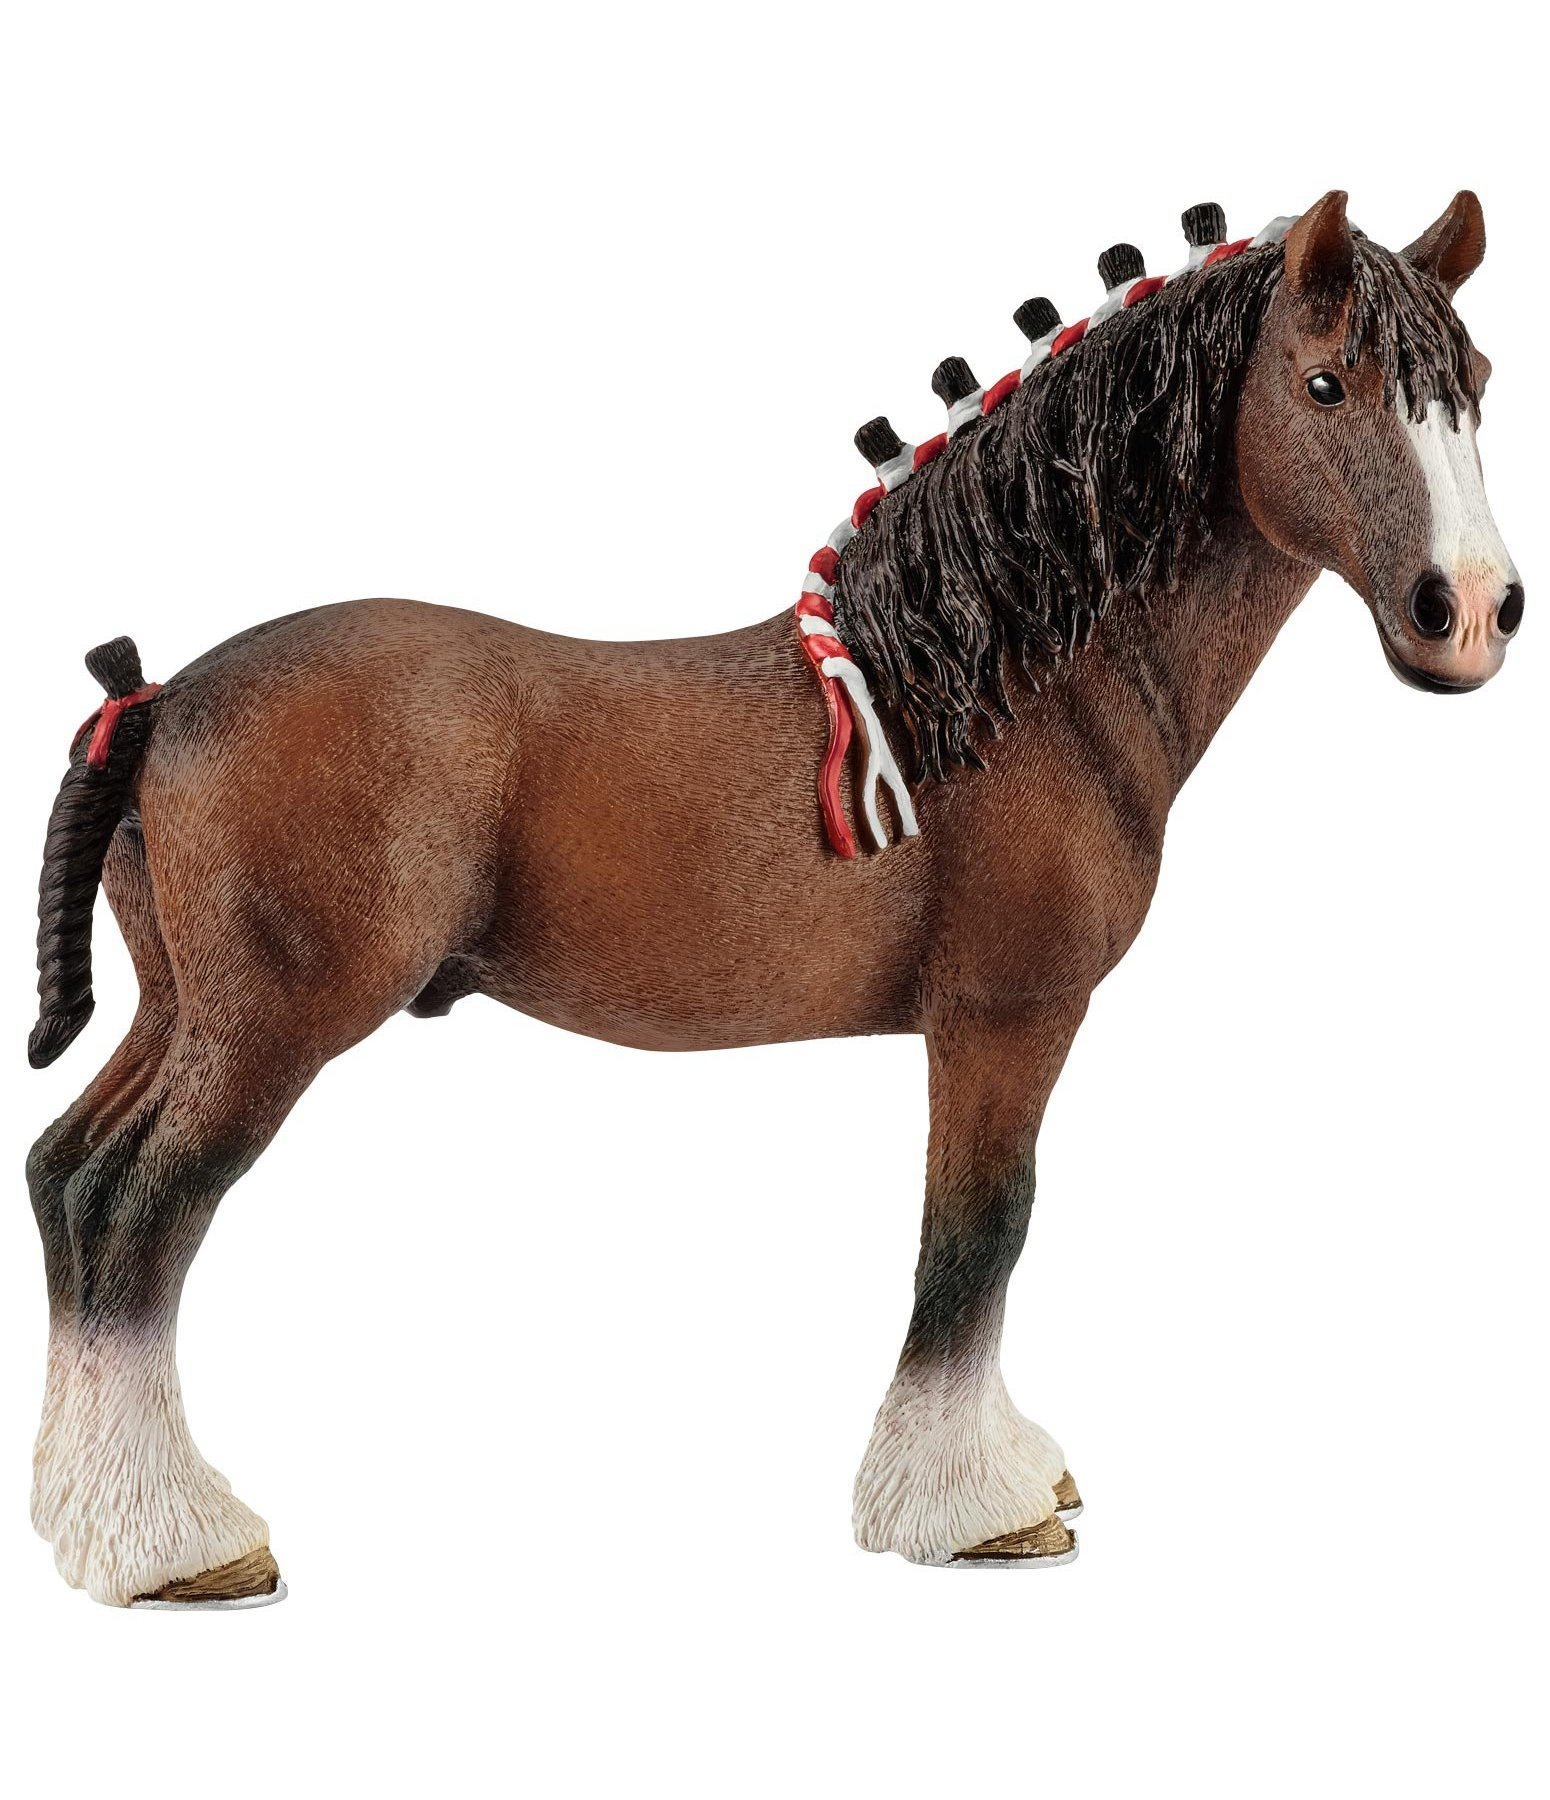 cheval clydesdale figurines questres kramer equitation. Black Bedroom Furniture Sets. Home Design Ideas